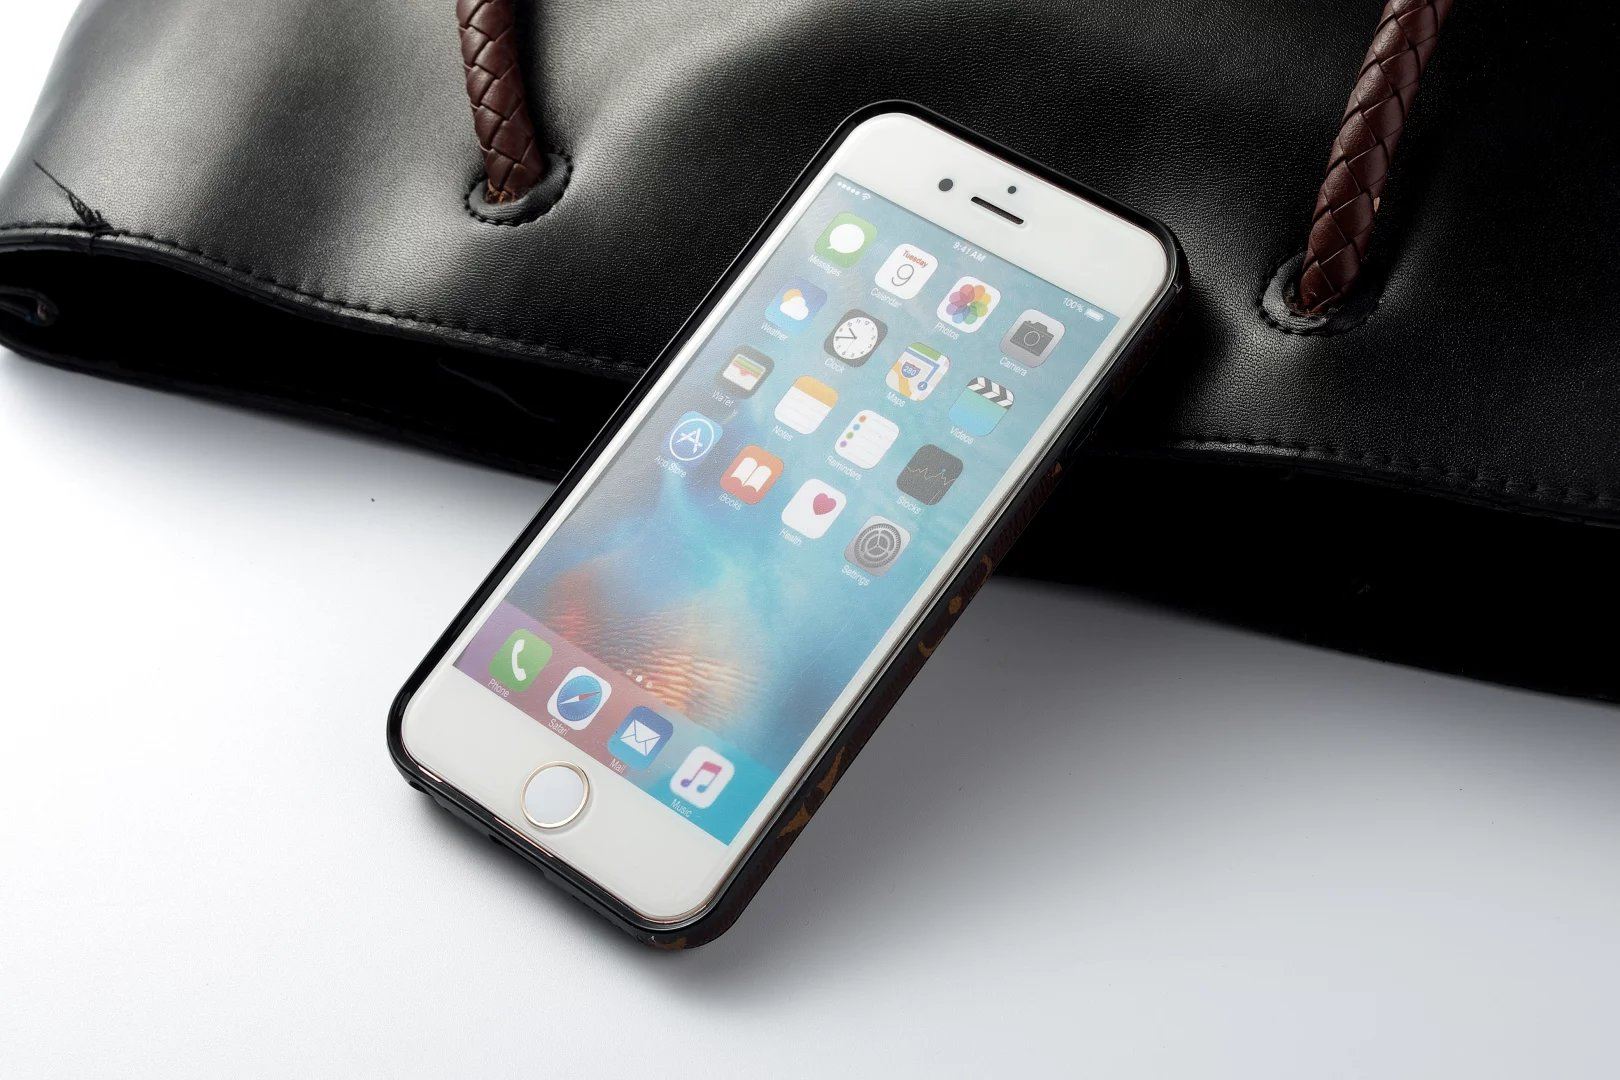 handyhülle iphone selbst gestalten iphone hülle selbst designen Louis Vuitton iphone 8 hüllen smartphone hülle was kann das iphone 8 alles i phone neu carbon handyhülle iphone 8 iphone 8 a8 leder apple iphone 8 ca8 leder